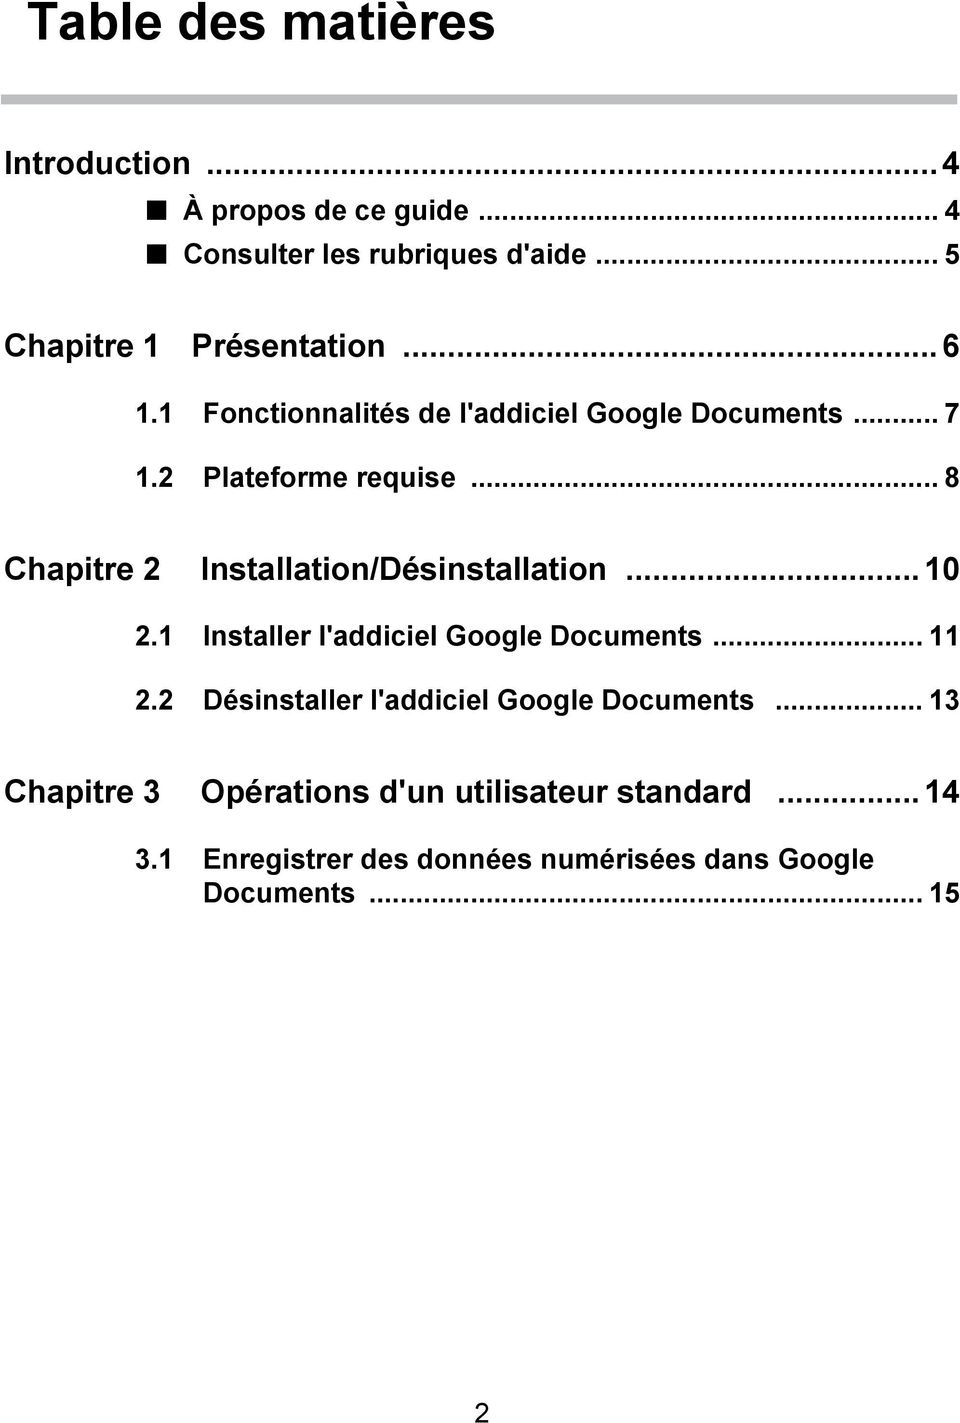 .. 8 Chapitre 2 Installation/Désinstallation... 10 2.1 Installer l'addiciel Google Documents... 11 2.